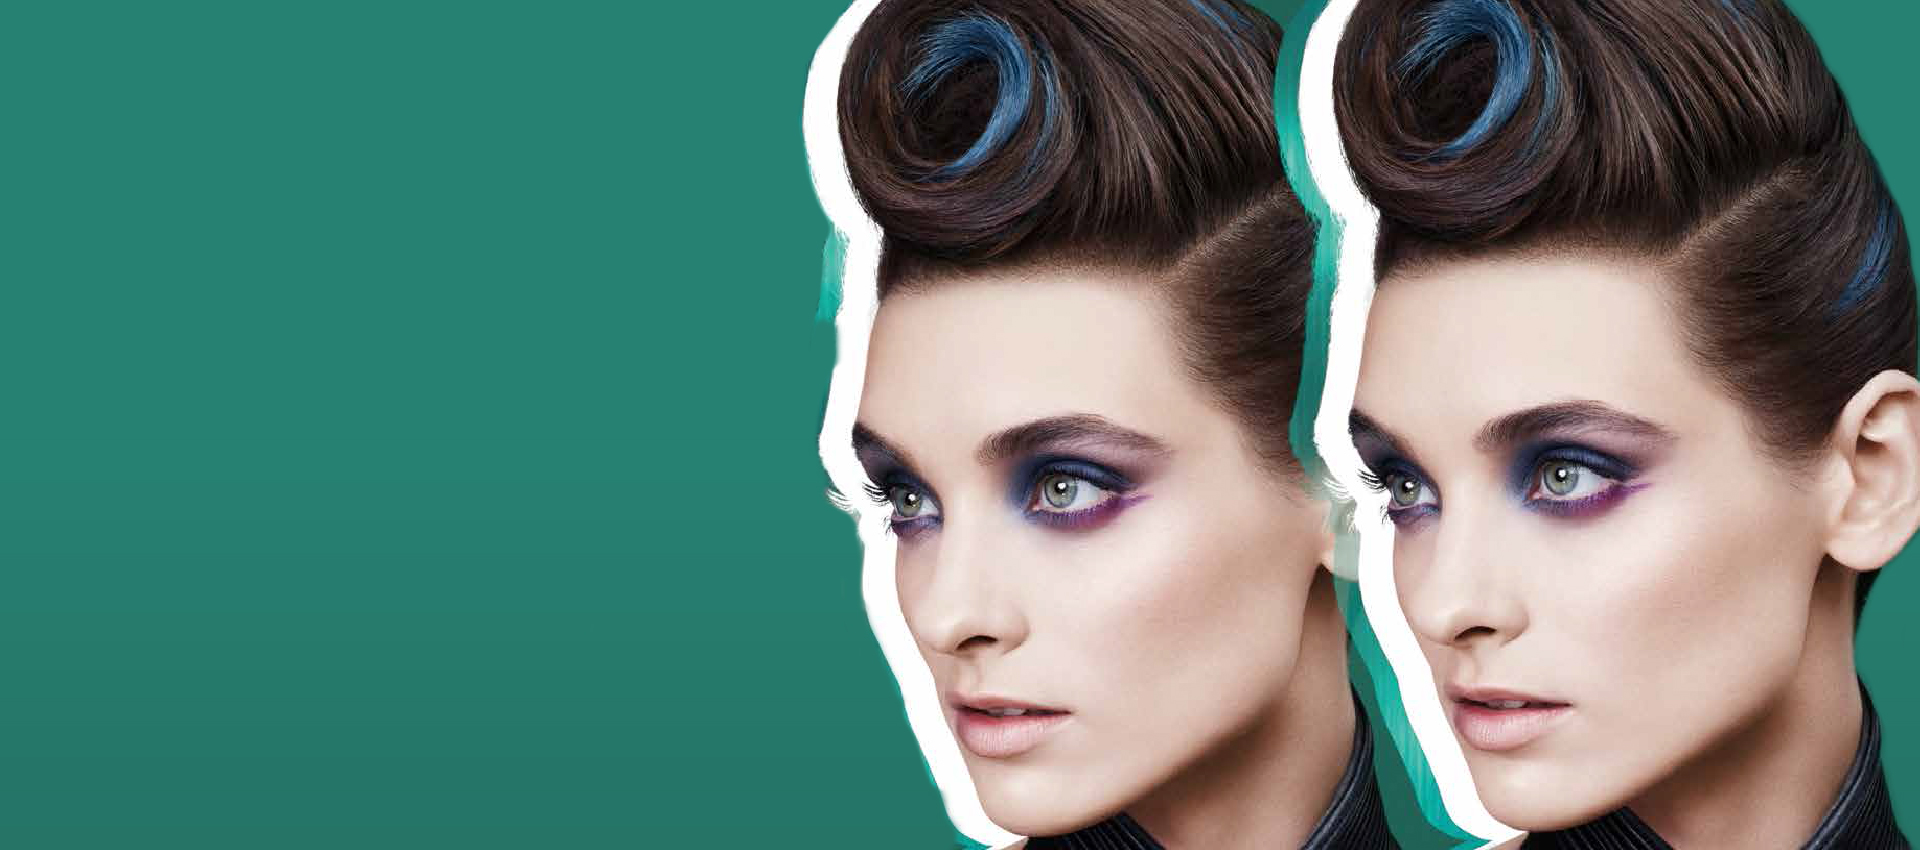 Matrix Hair Trend 21st century pop